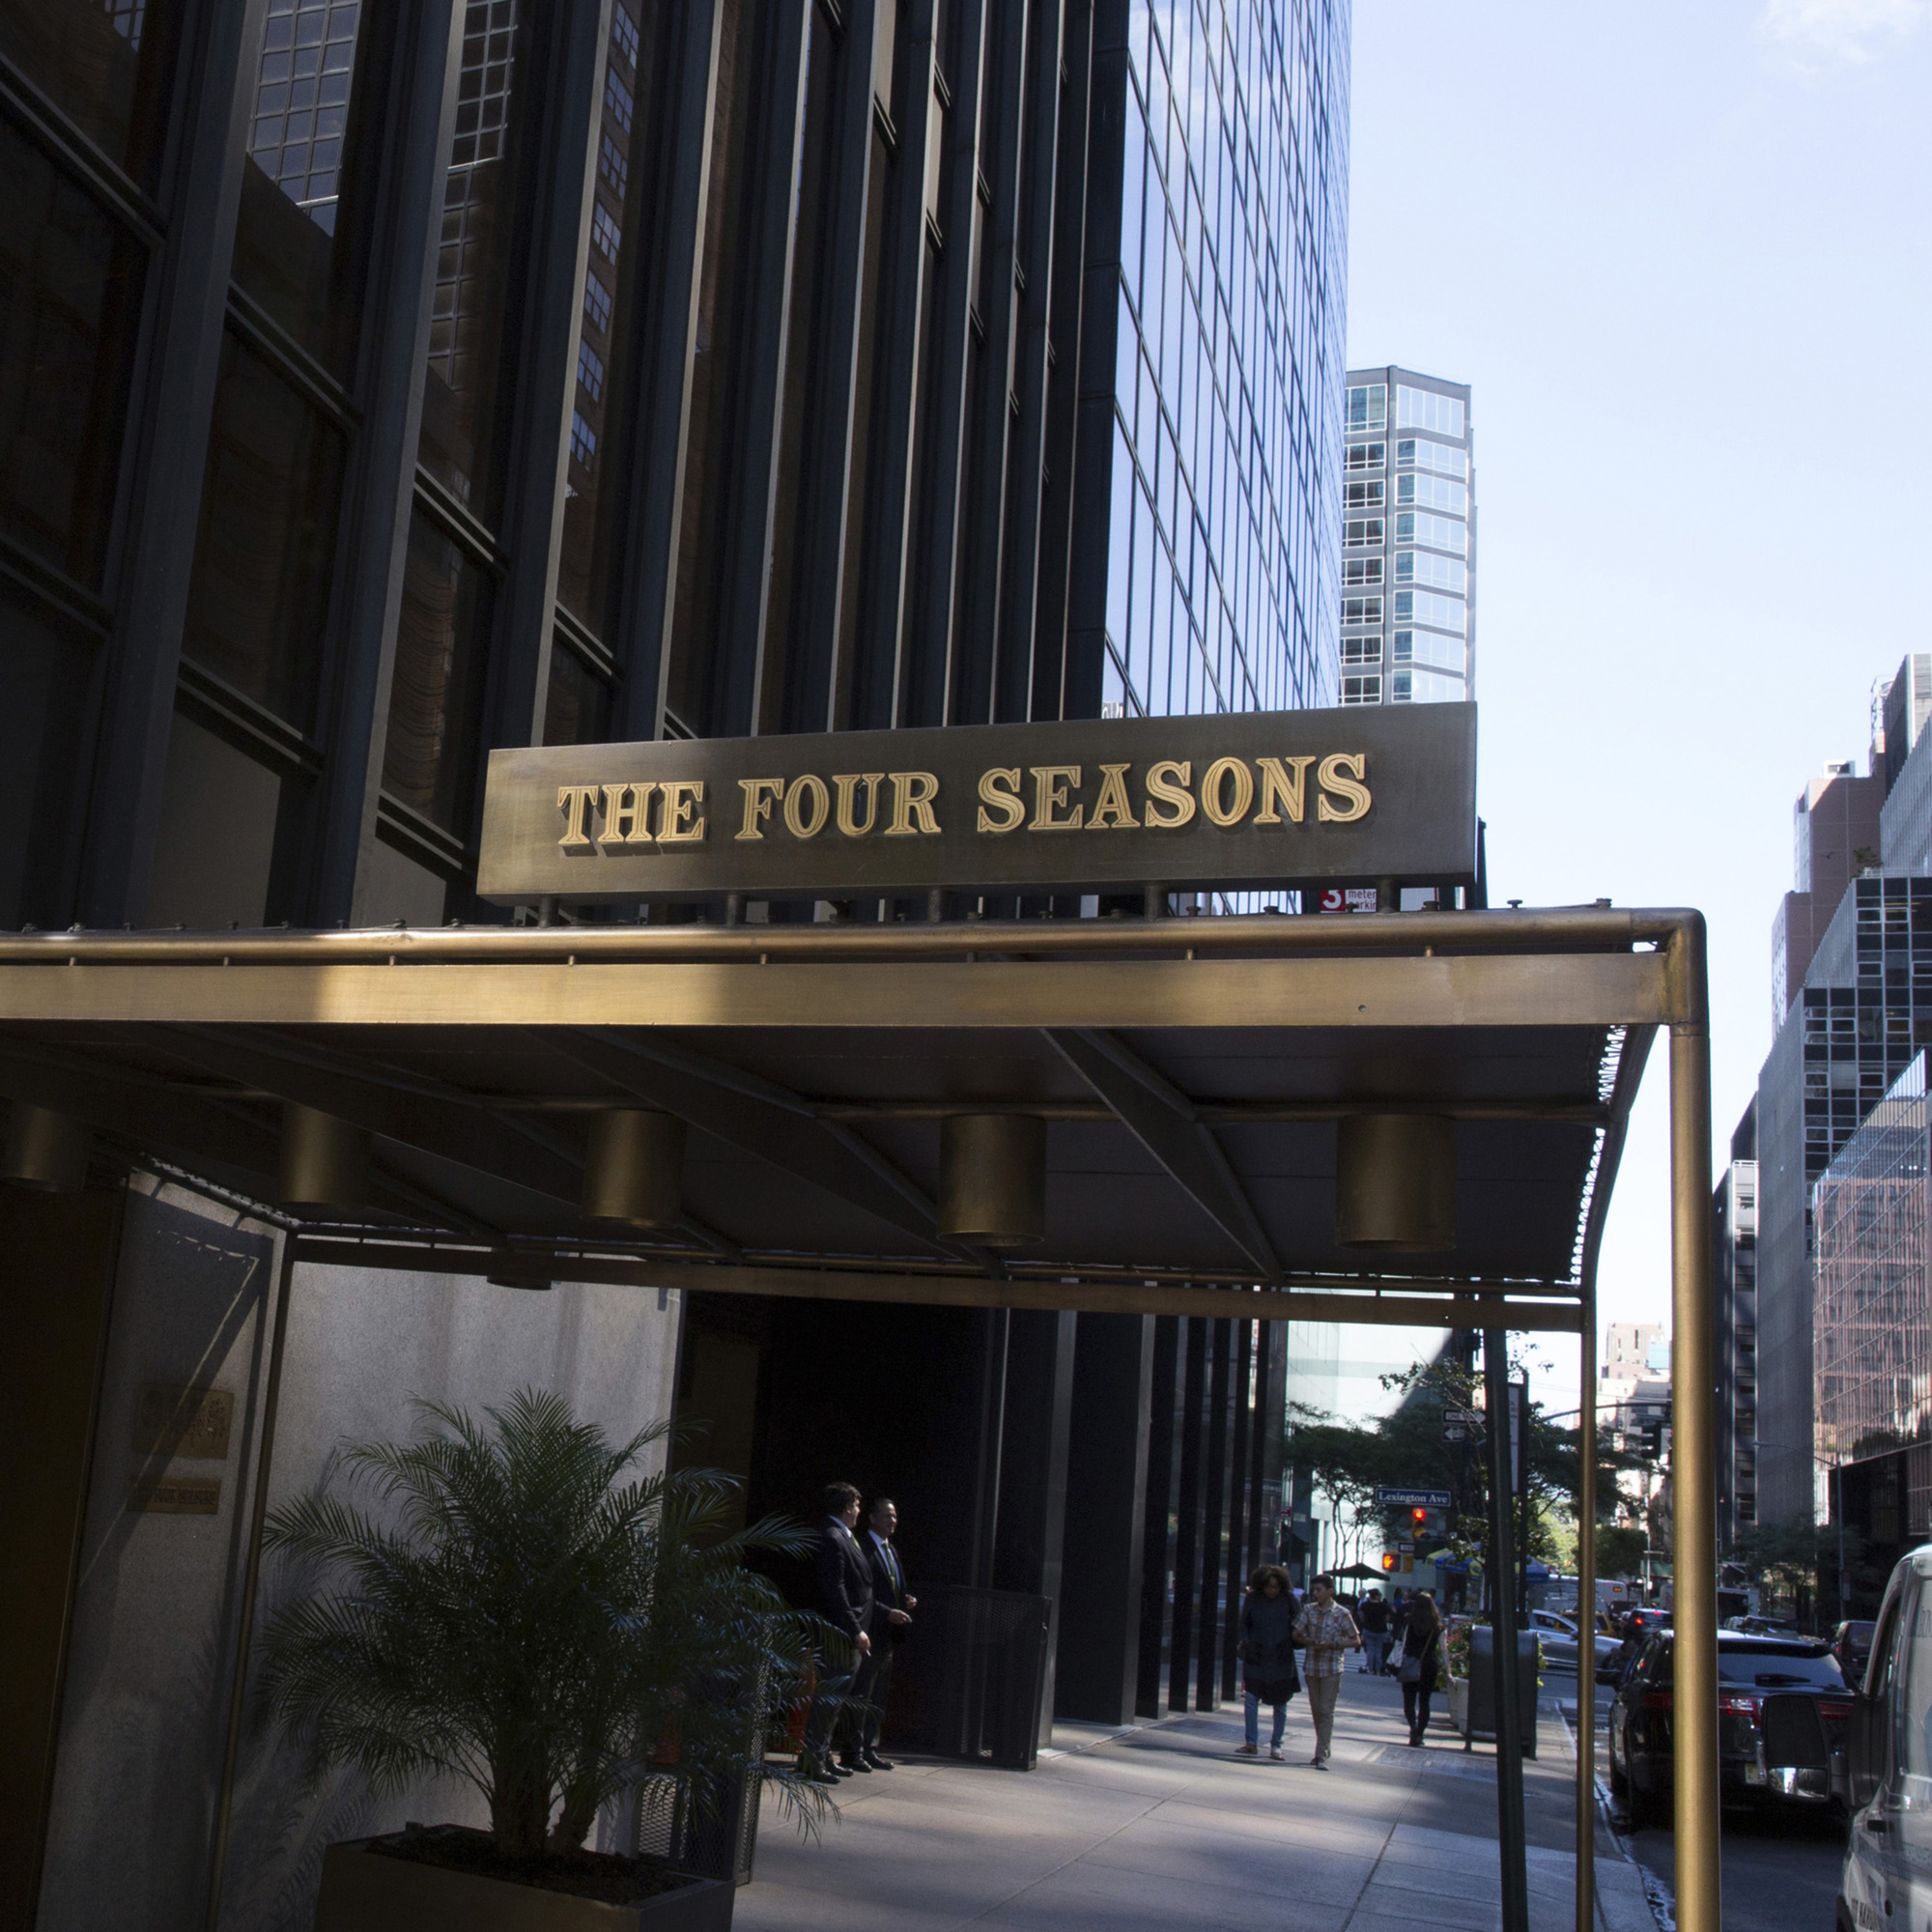 115: Emil Antonucci / The Four Seasons illuminated sign from the entrance awning (1 of 1)